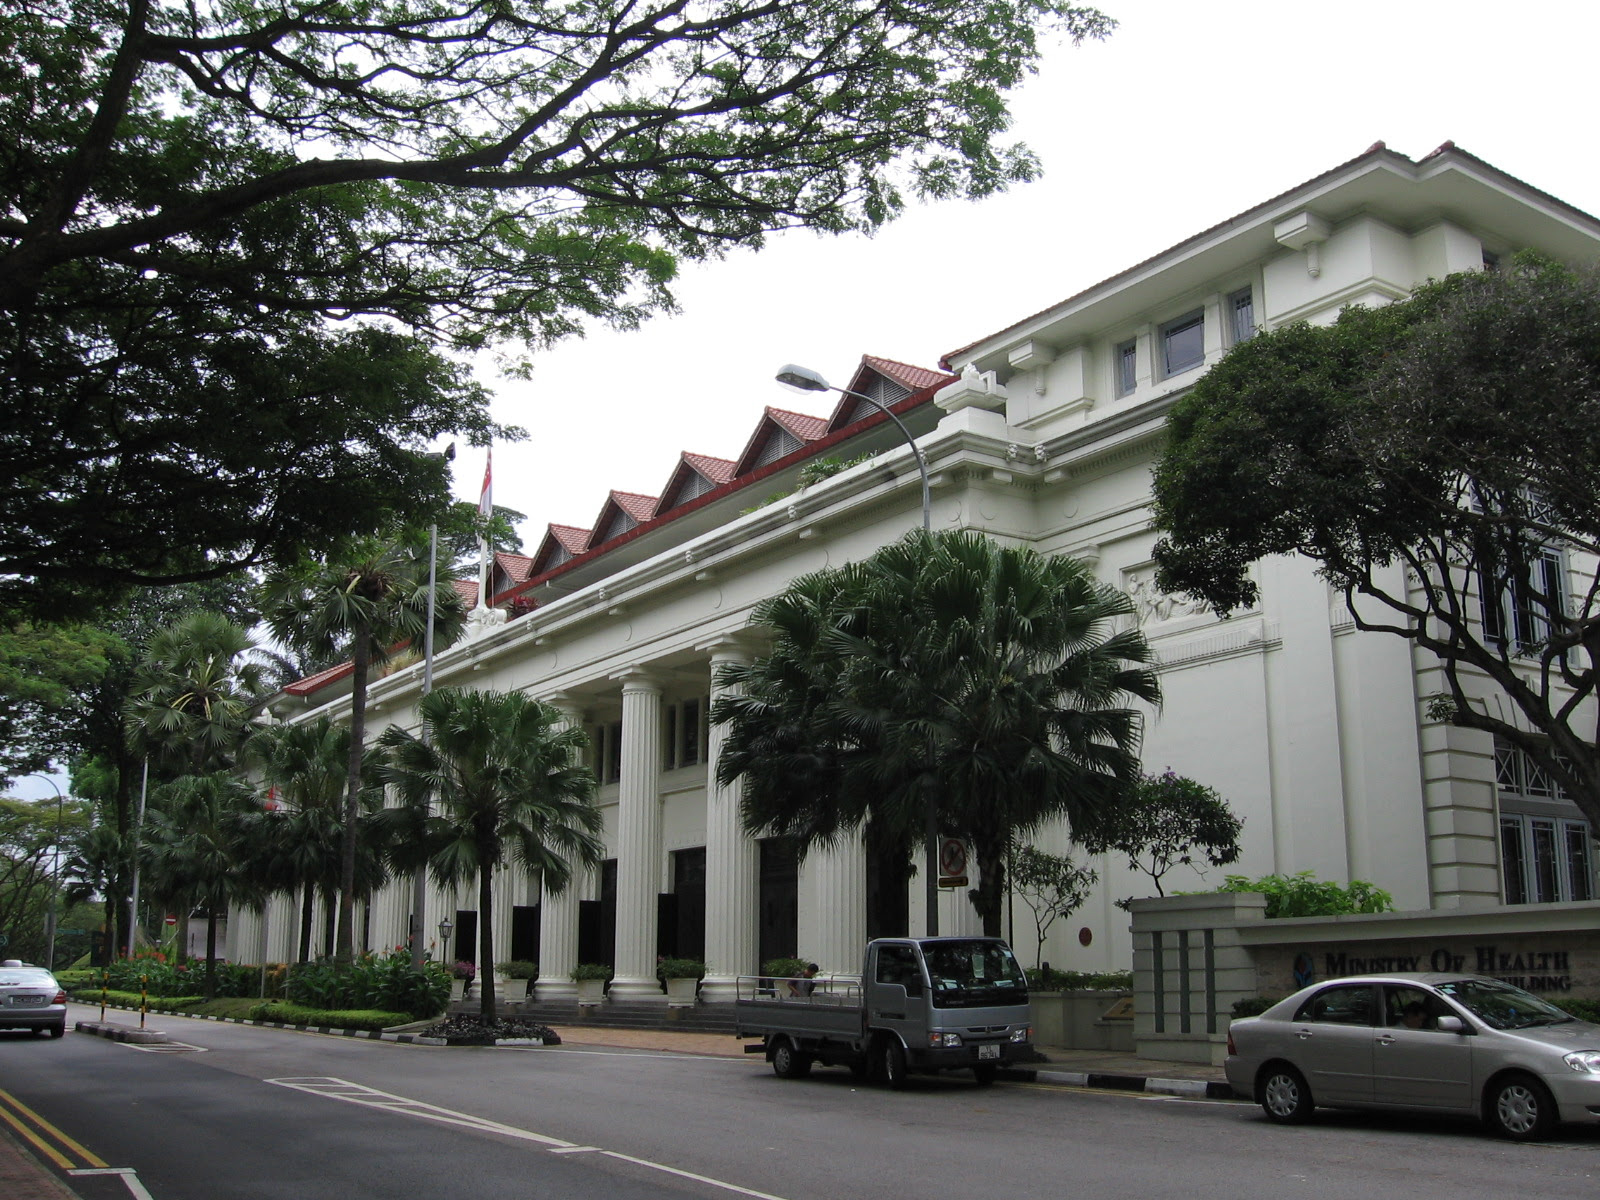 College of Medicine Building Singapore Map,Map of College of Medicine Building Singapore,Tourist Attractions in Singapore,Things to do in Singapore,Medicine Building Singapore accommodation destinations attractions hotels map reviews photos pictures